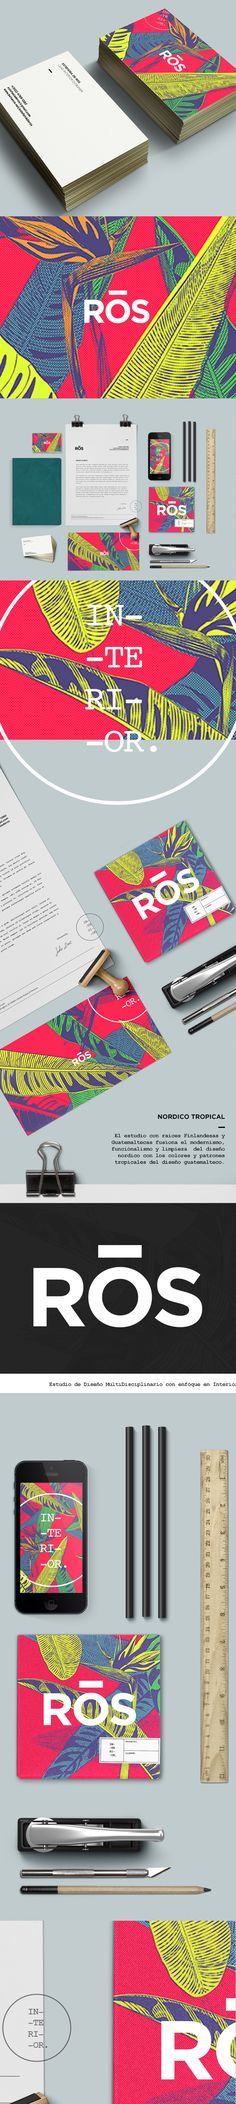 Ros Interior Design on Behance in Bright